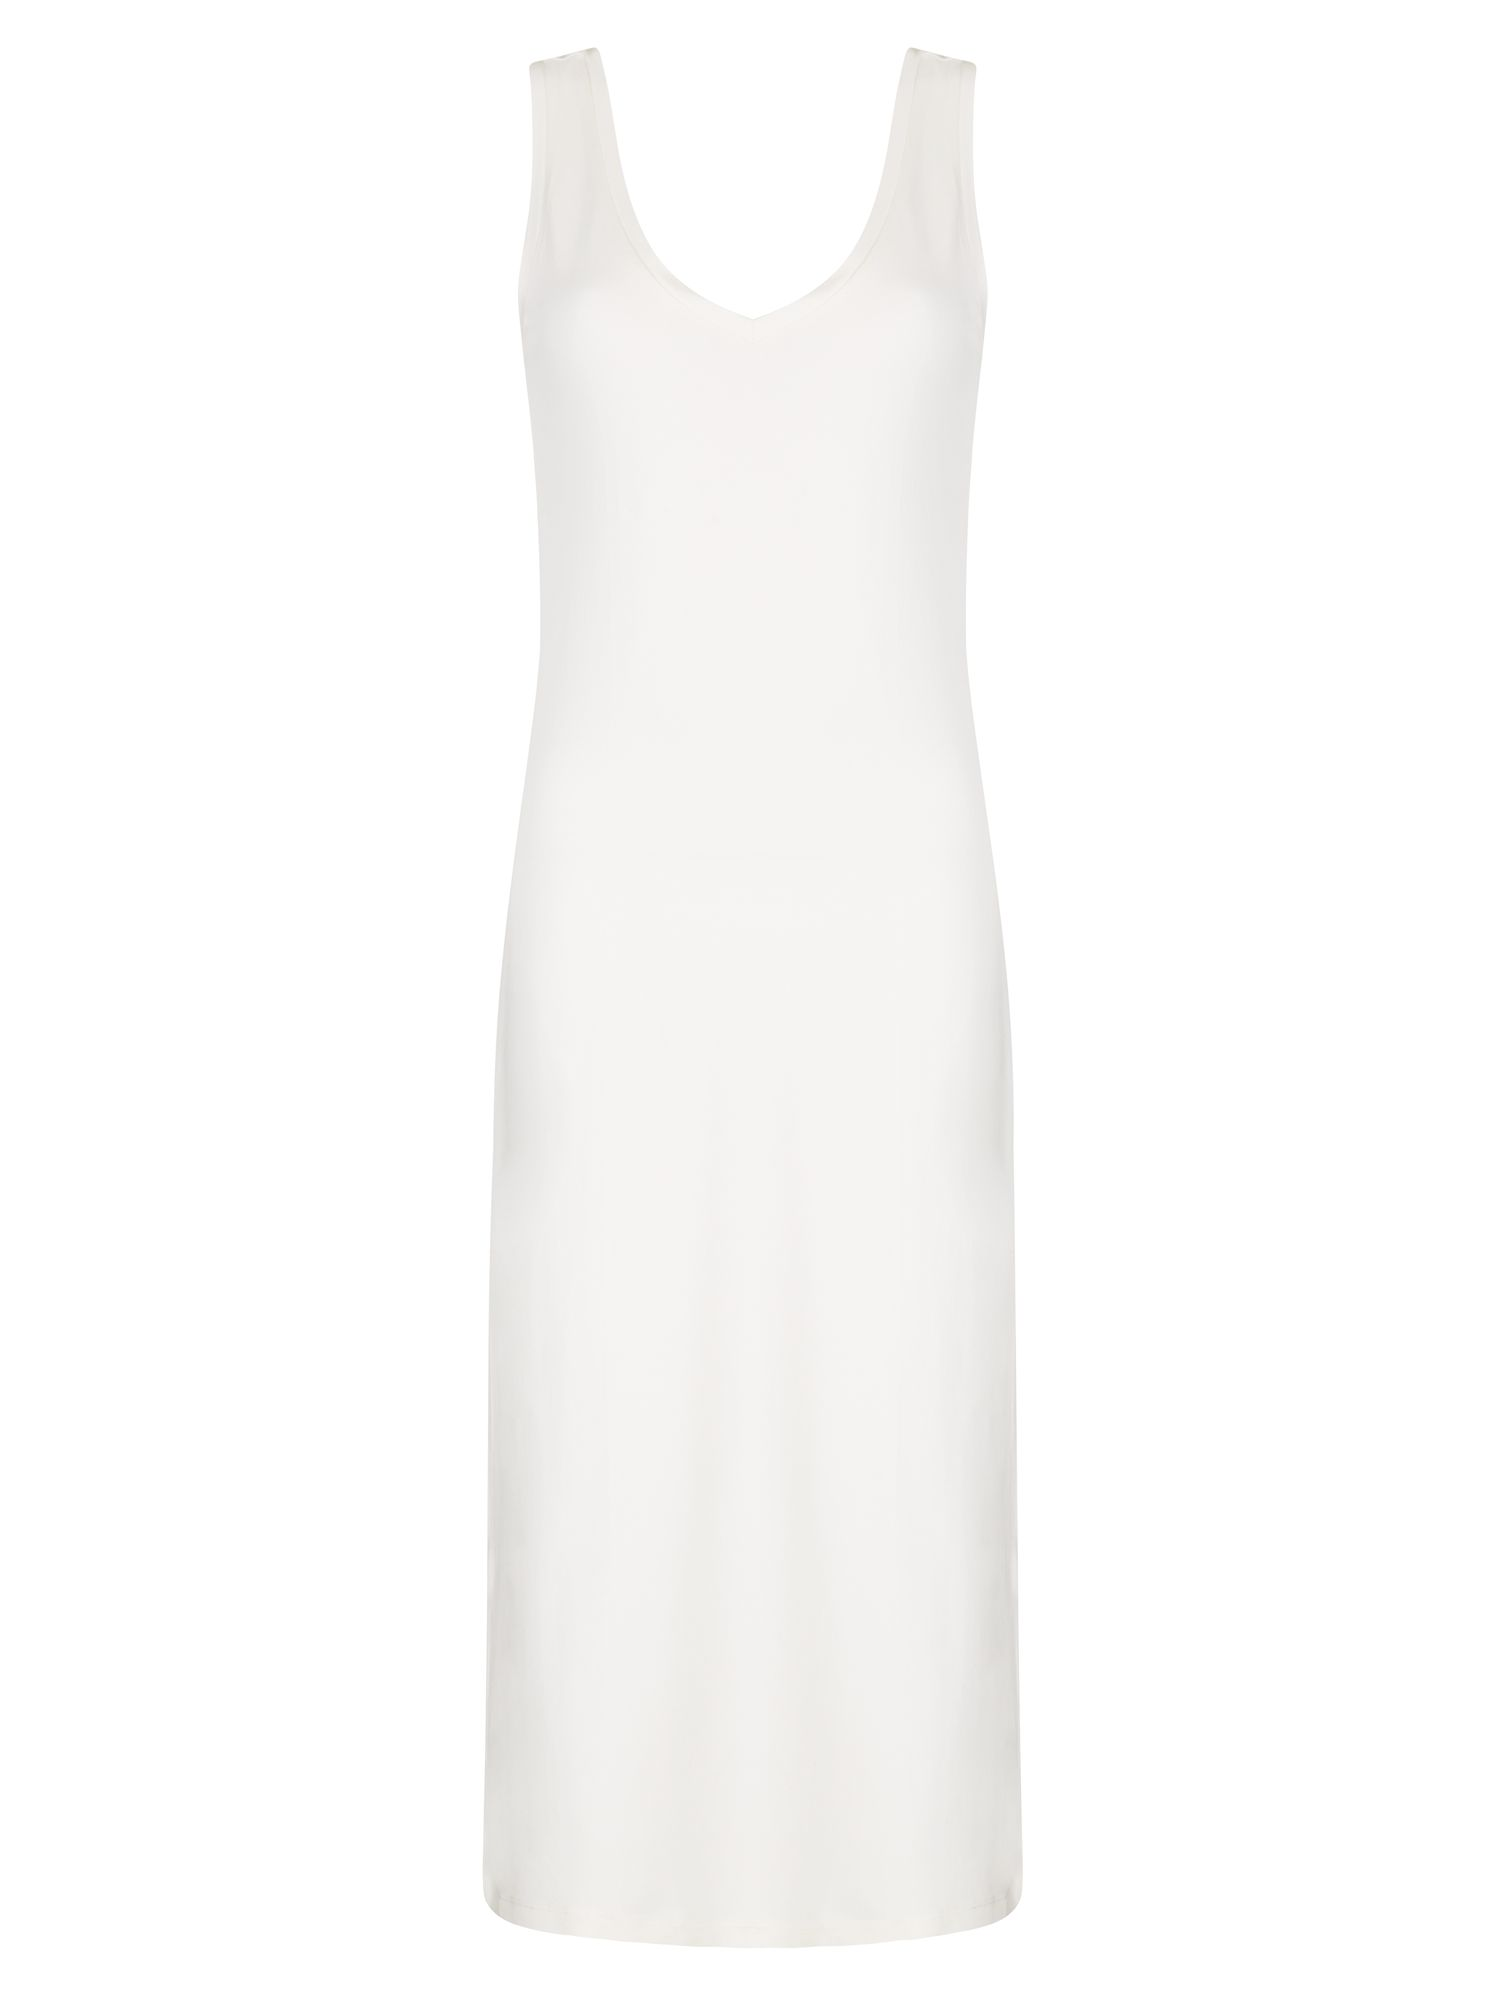 Winser London Brigitte V Neck Jersey dress, Cream